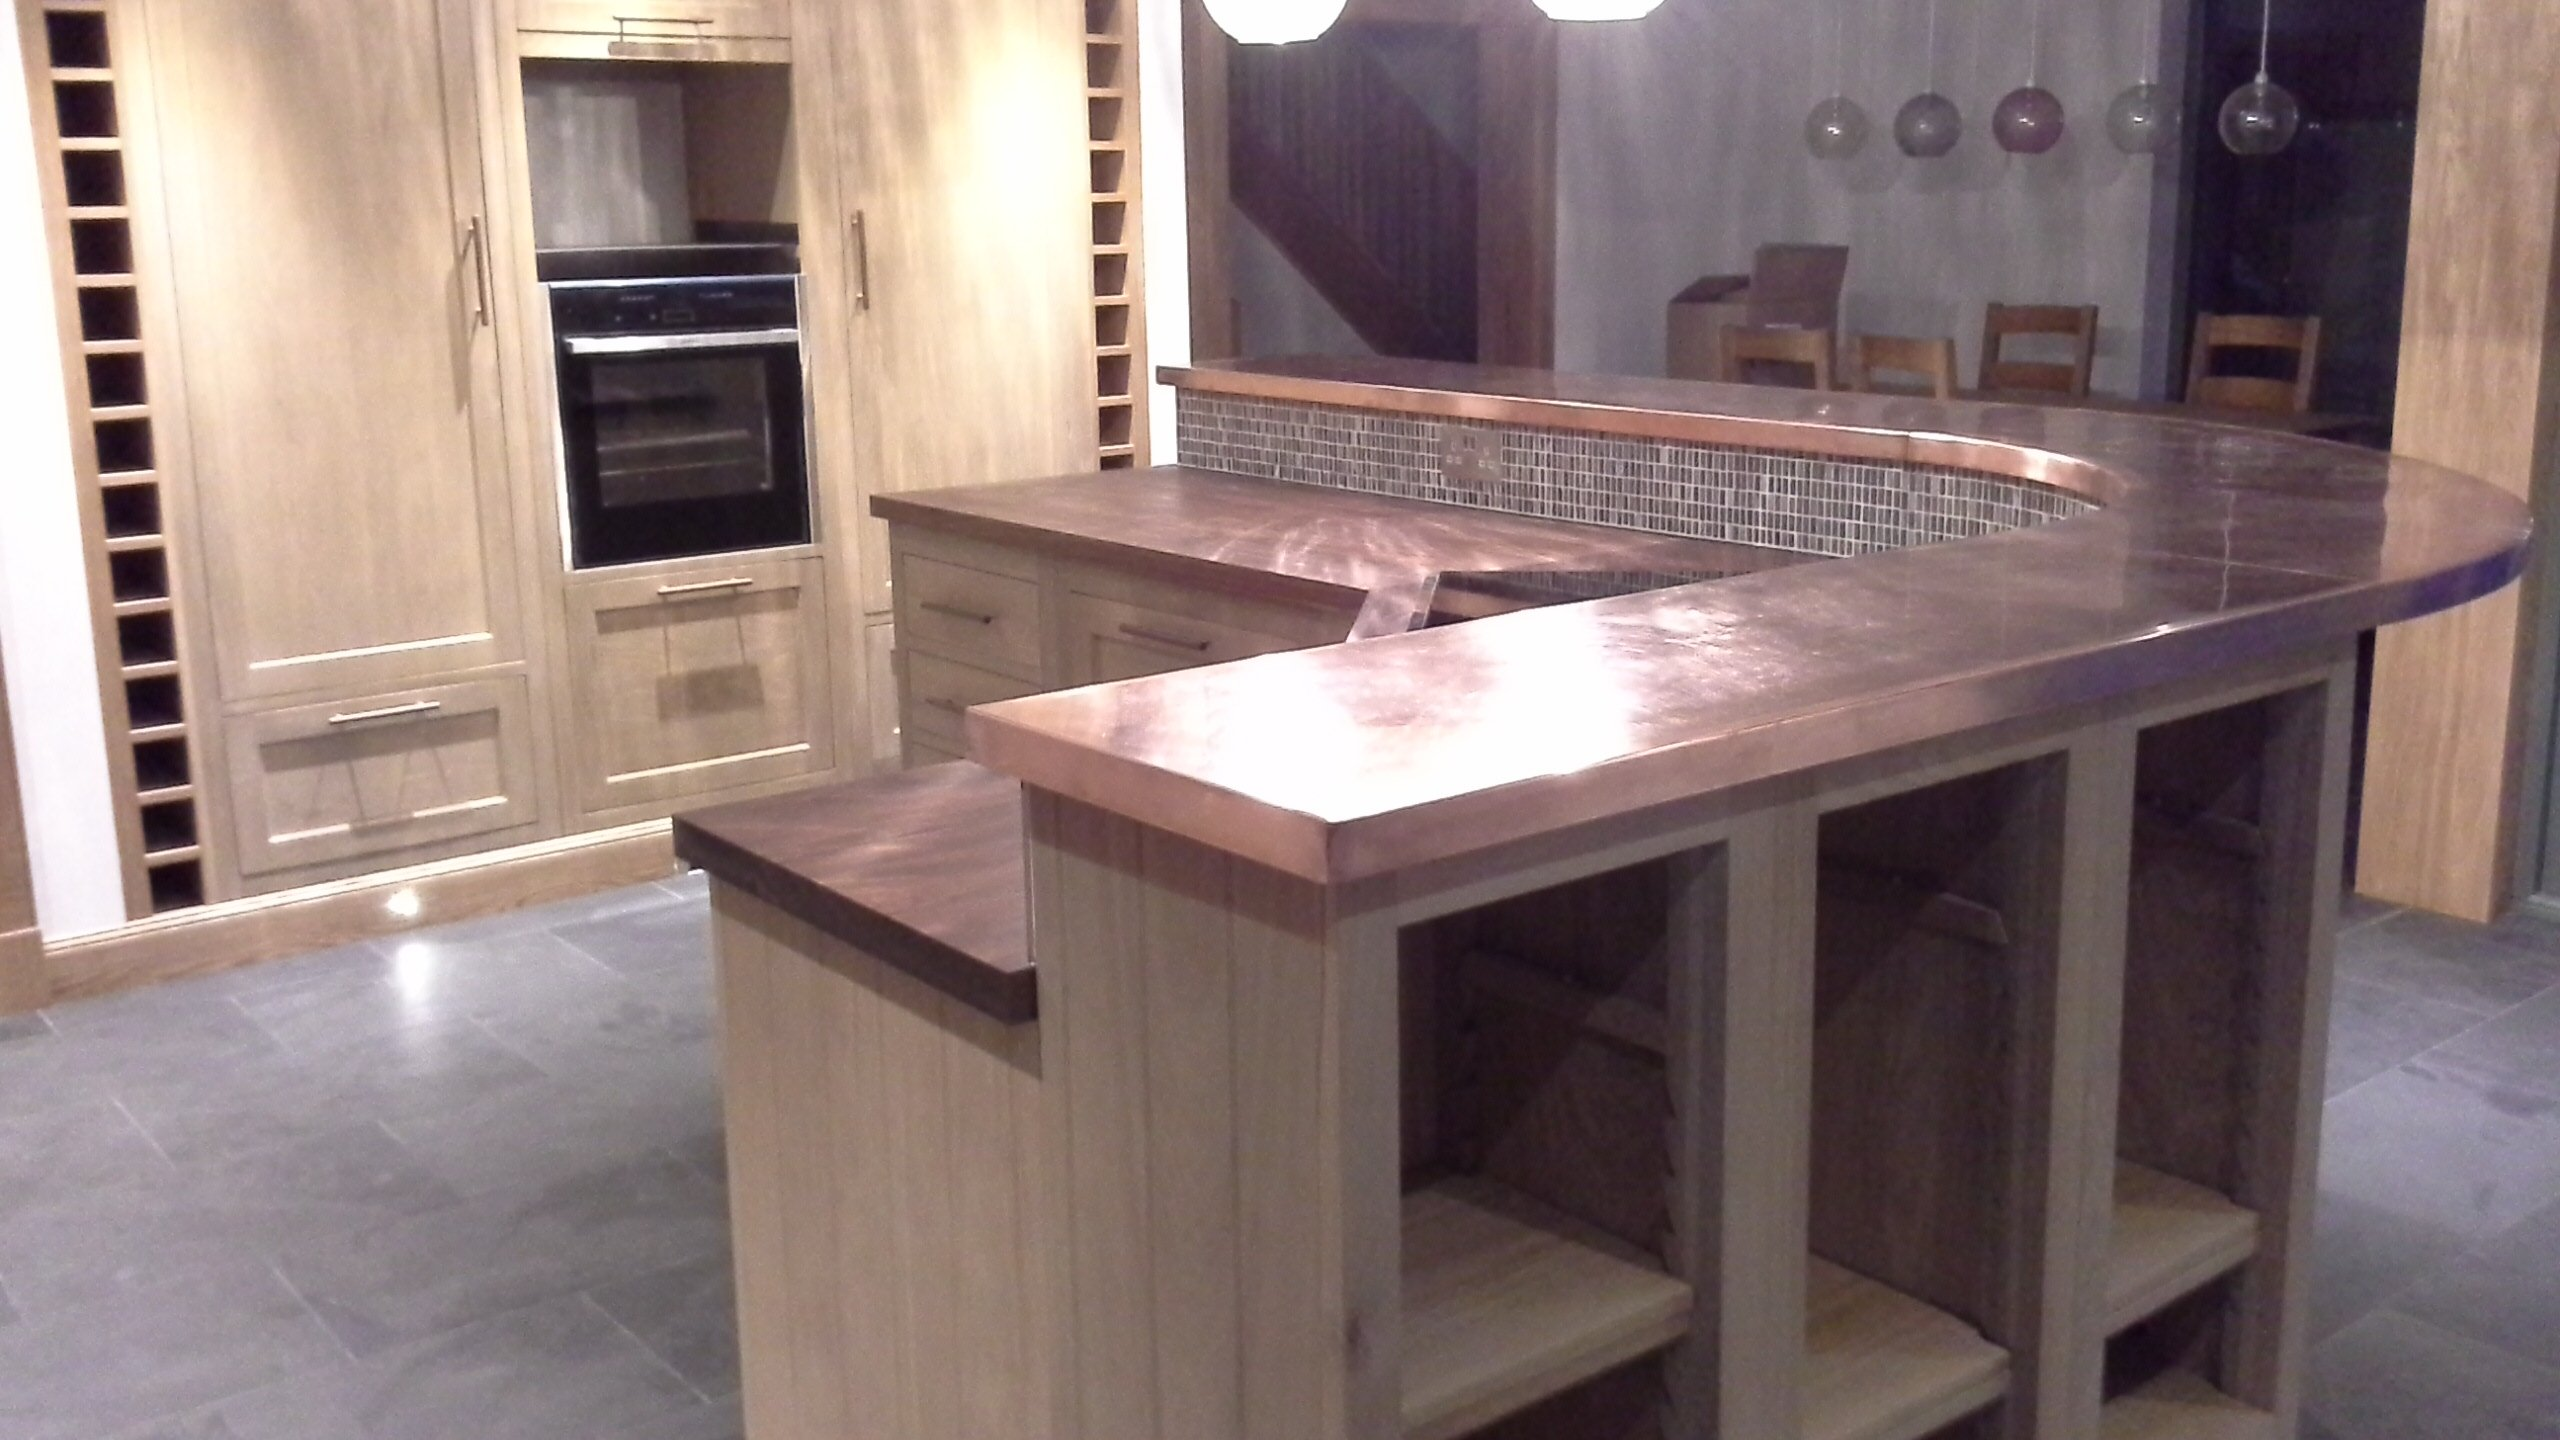 Bespoke Copper Kitchen Worktops